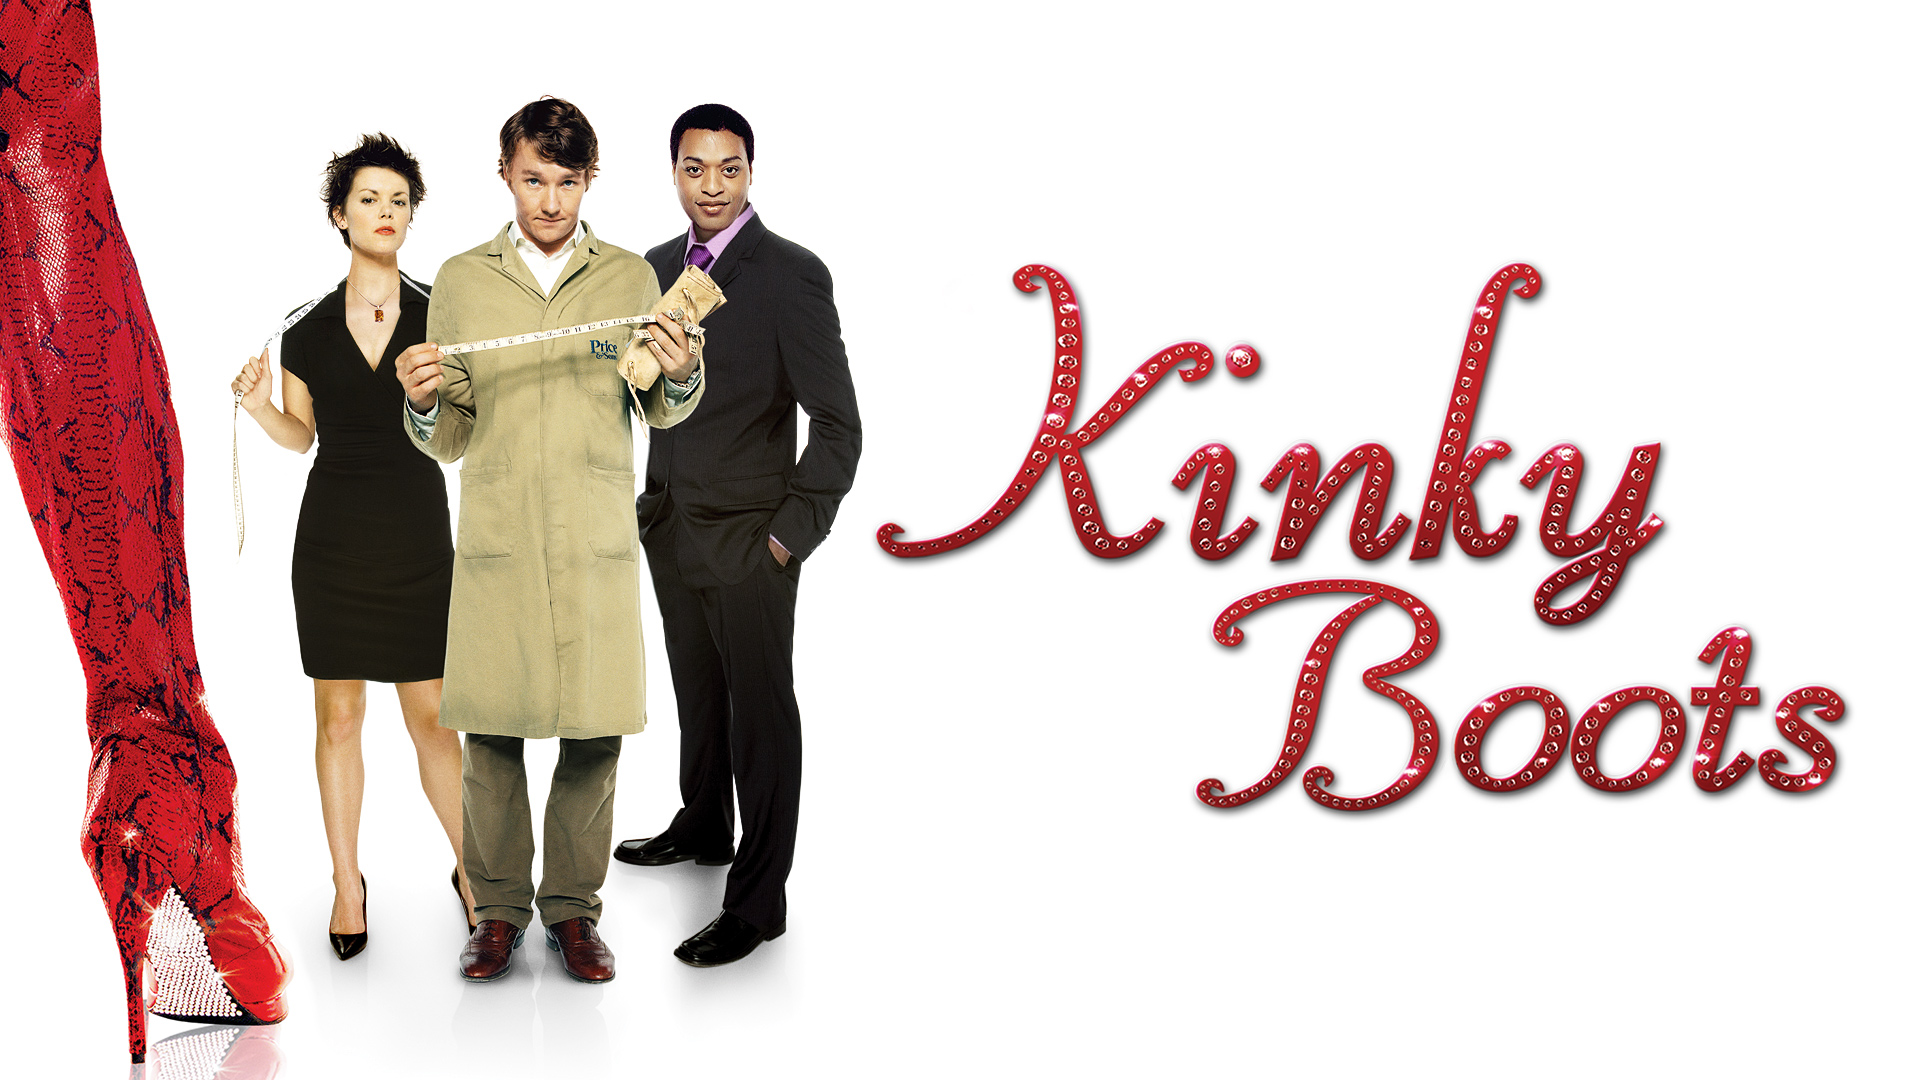 Kinky boots official trailer hd - Kinky boots decisamente diversi ...